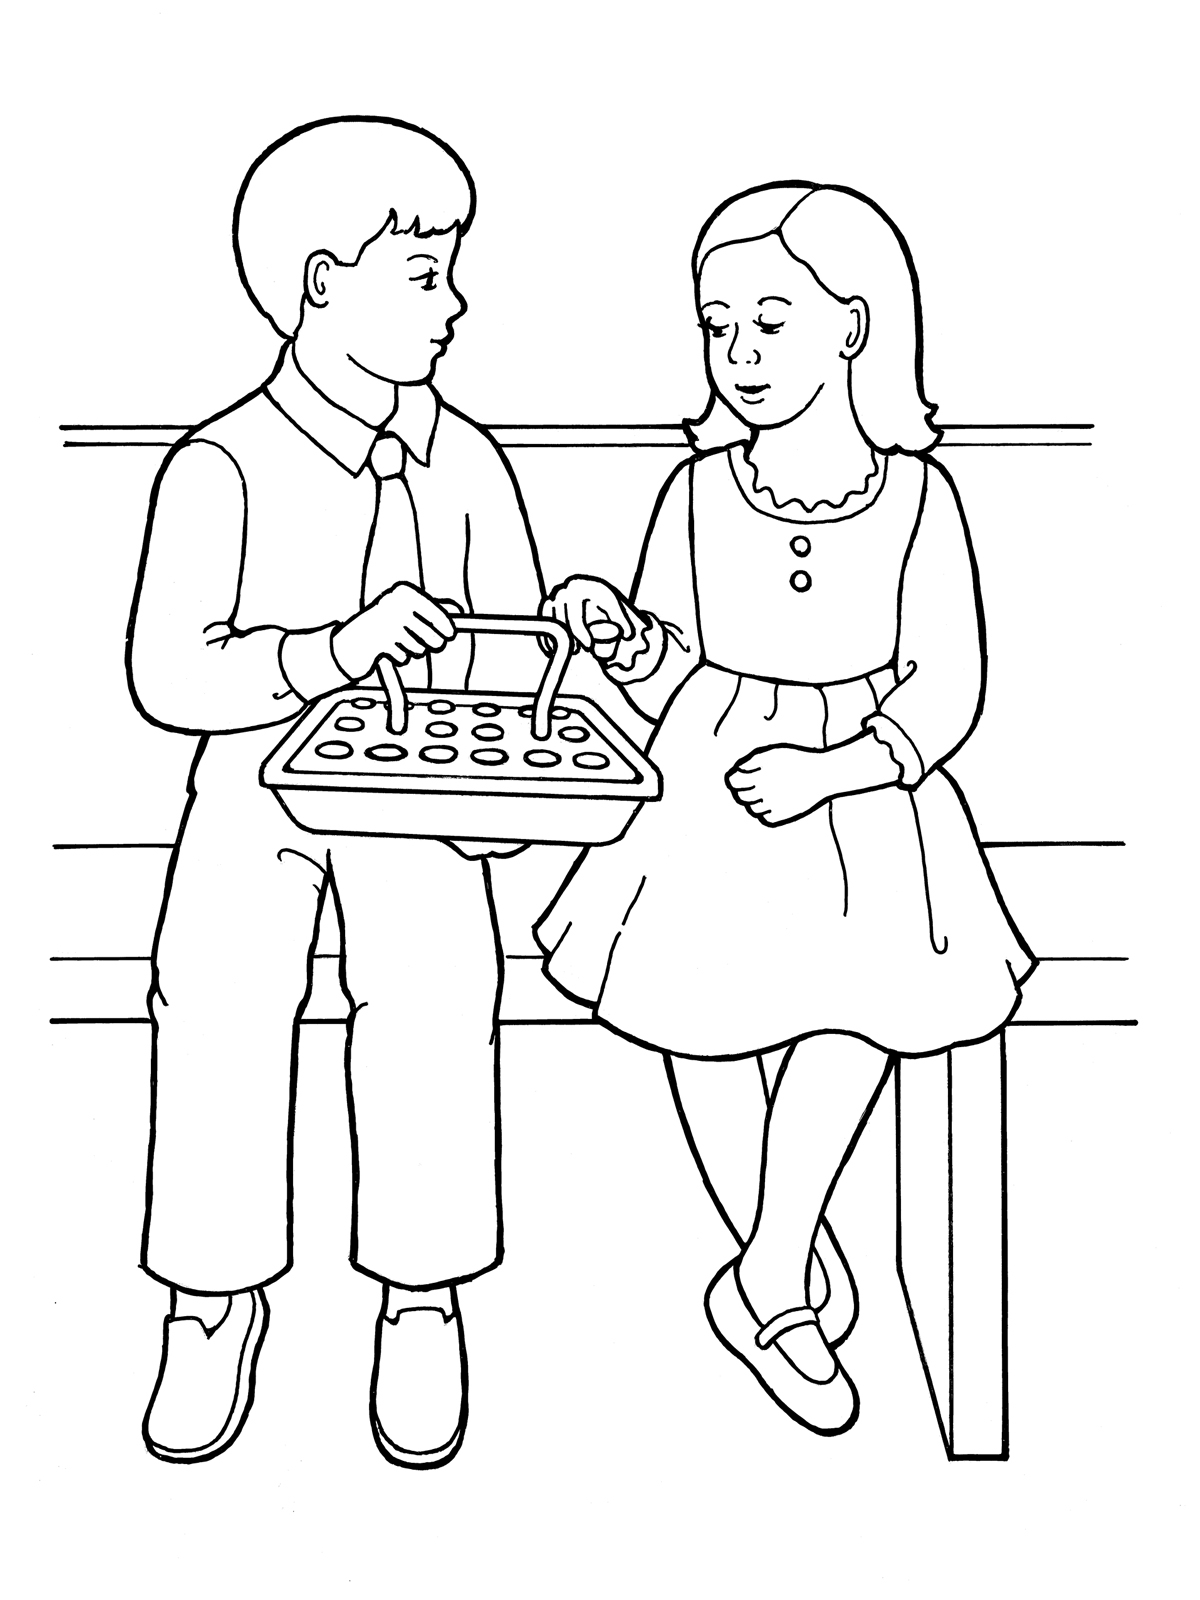 child sharing coloring pages - photo#25